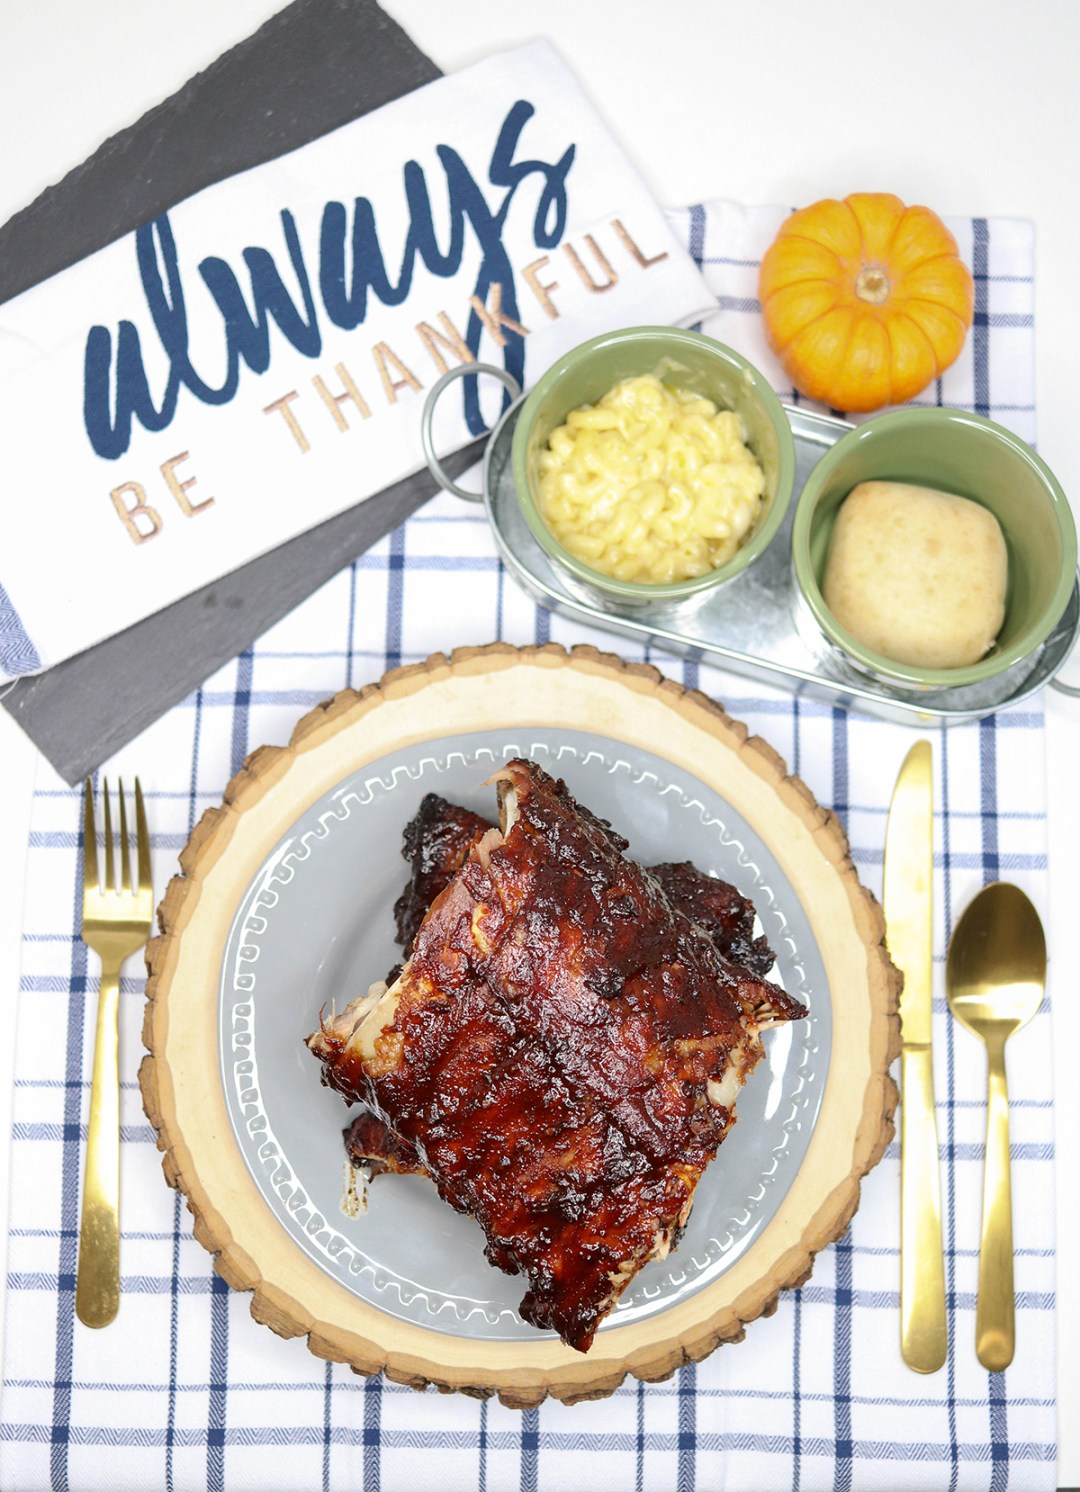 Tastes of Now Sweet Pork Baby Back Ribs Recipe | Bianca Dottin